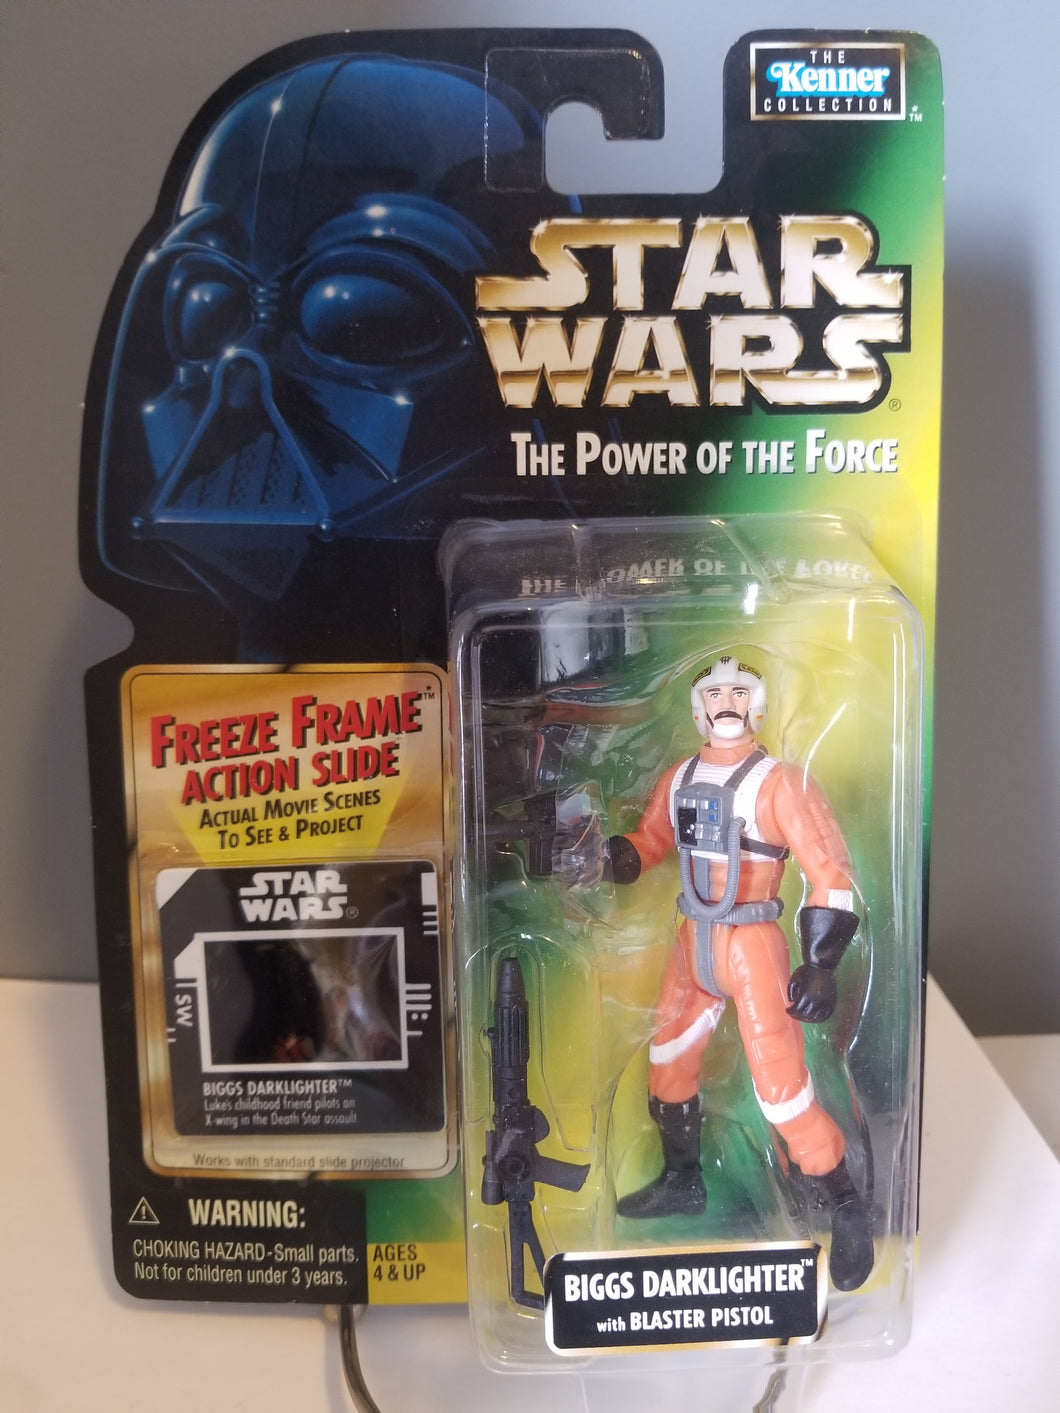 1997 Star Wars POTF2 Biggs Darklighter Green Carded Figure with Freeze Frame